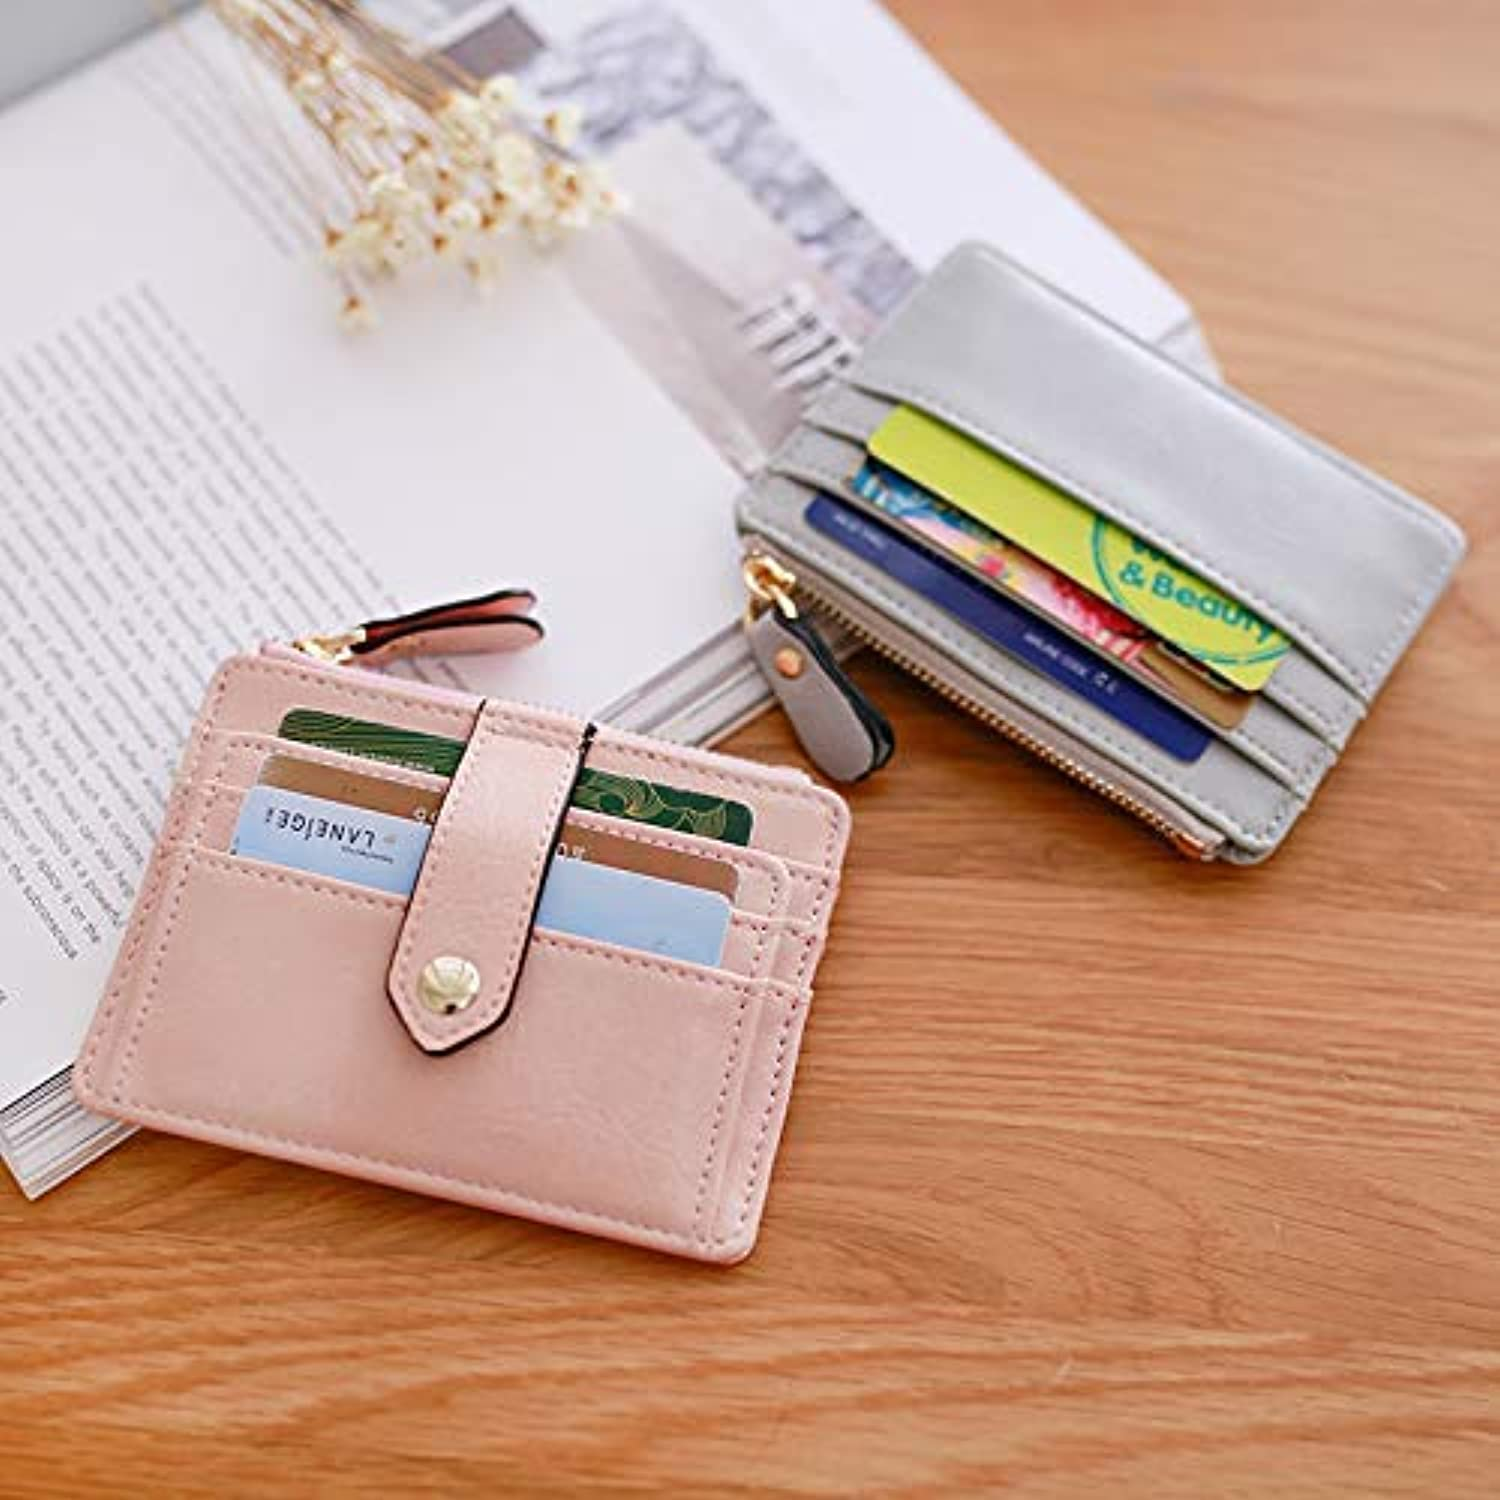 Card Package Women's Korean Korean Version of The UltraThin MultiCard Position Simple Mini Document Small Purse (color   Pink) Ladies Purses (color   Pink)